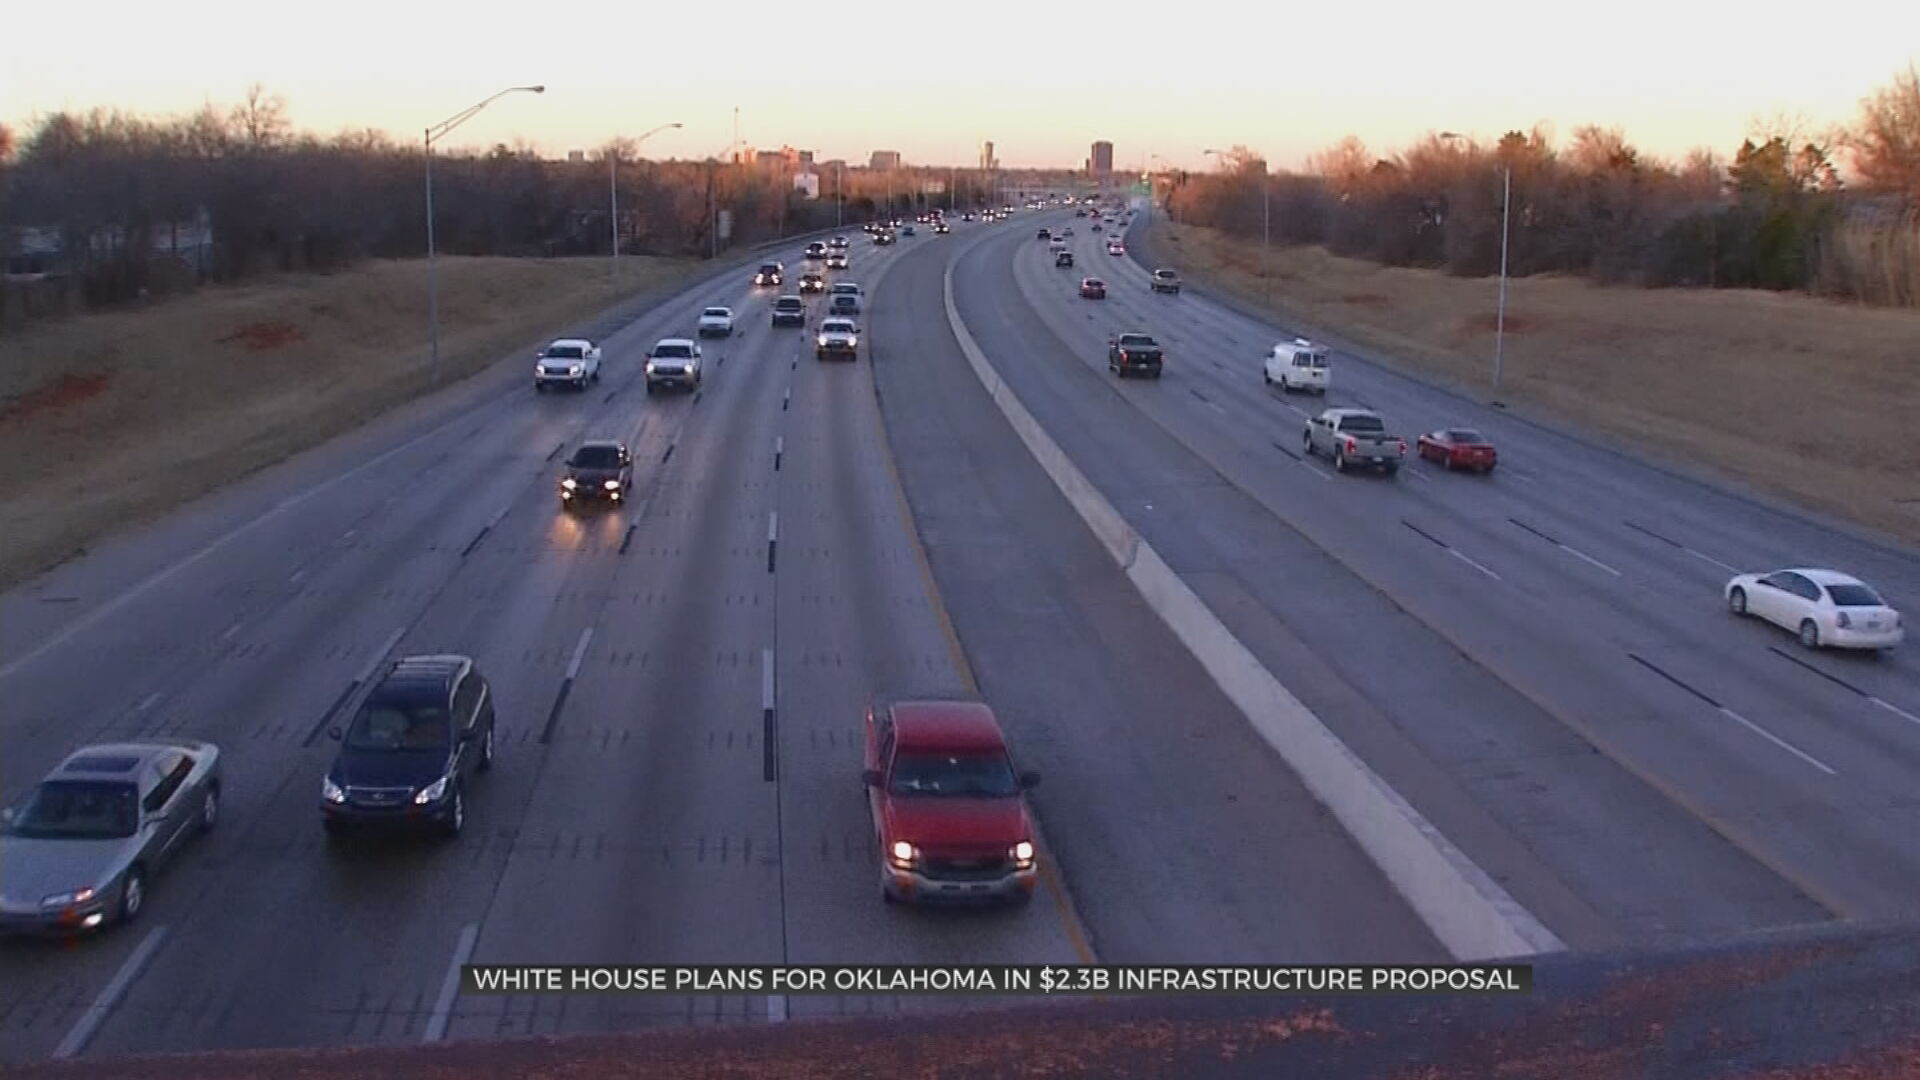 White House Releases Details For Oklahoma In $2.3 Trillion Infrastructure Proposal